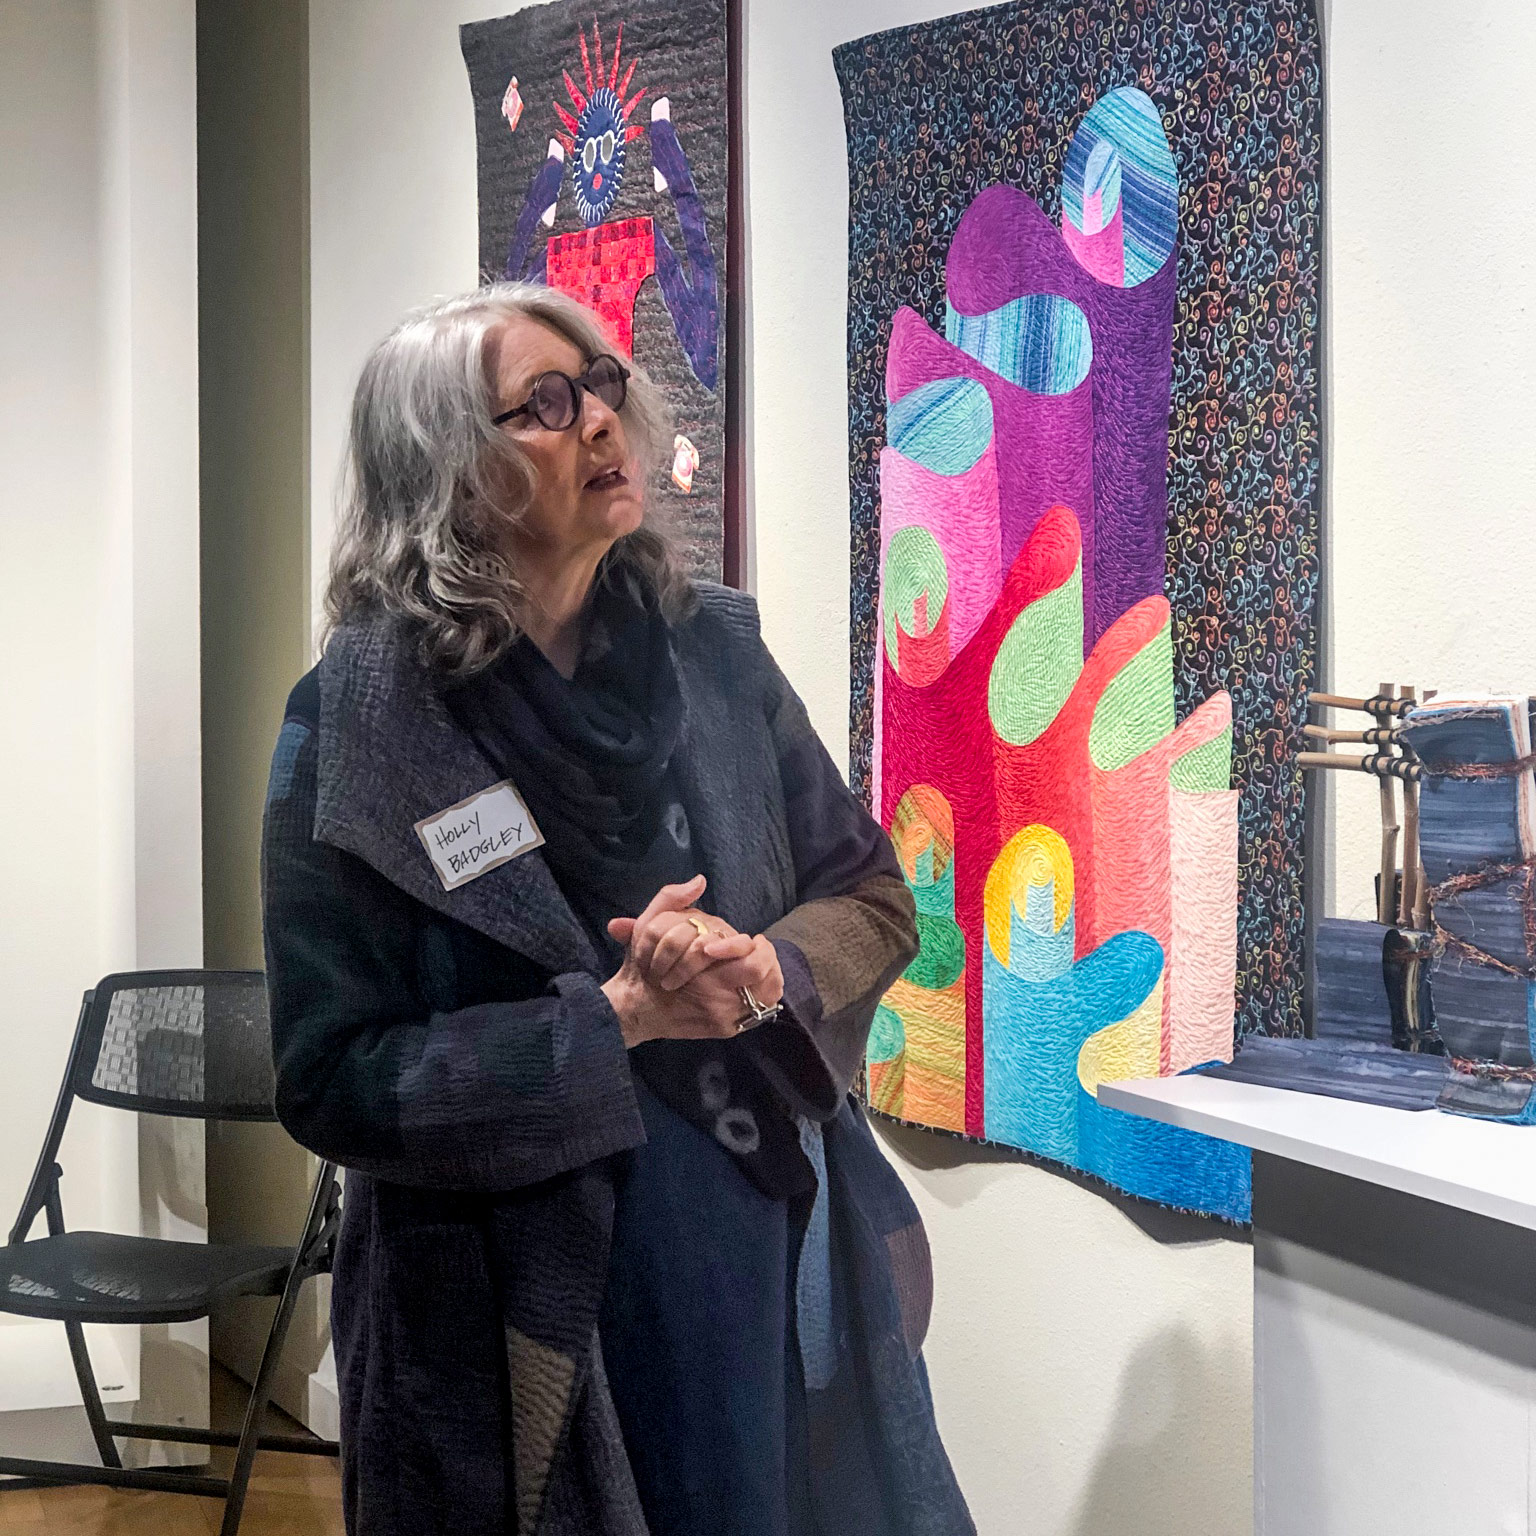 Holly Badgley discussing her textile art at the Sebastopol Center for the Arts